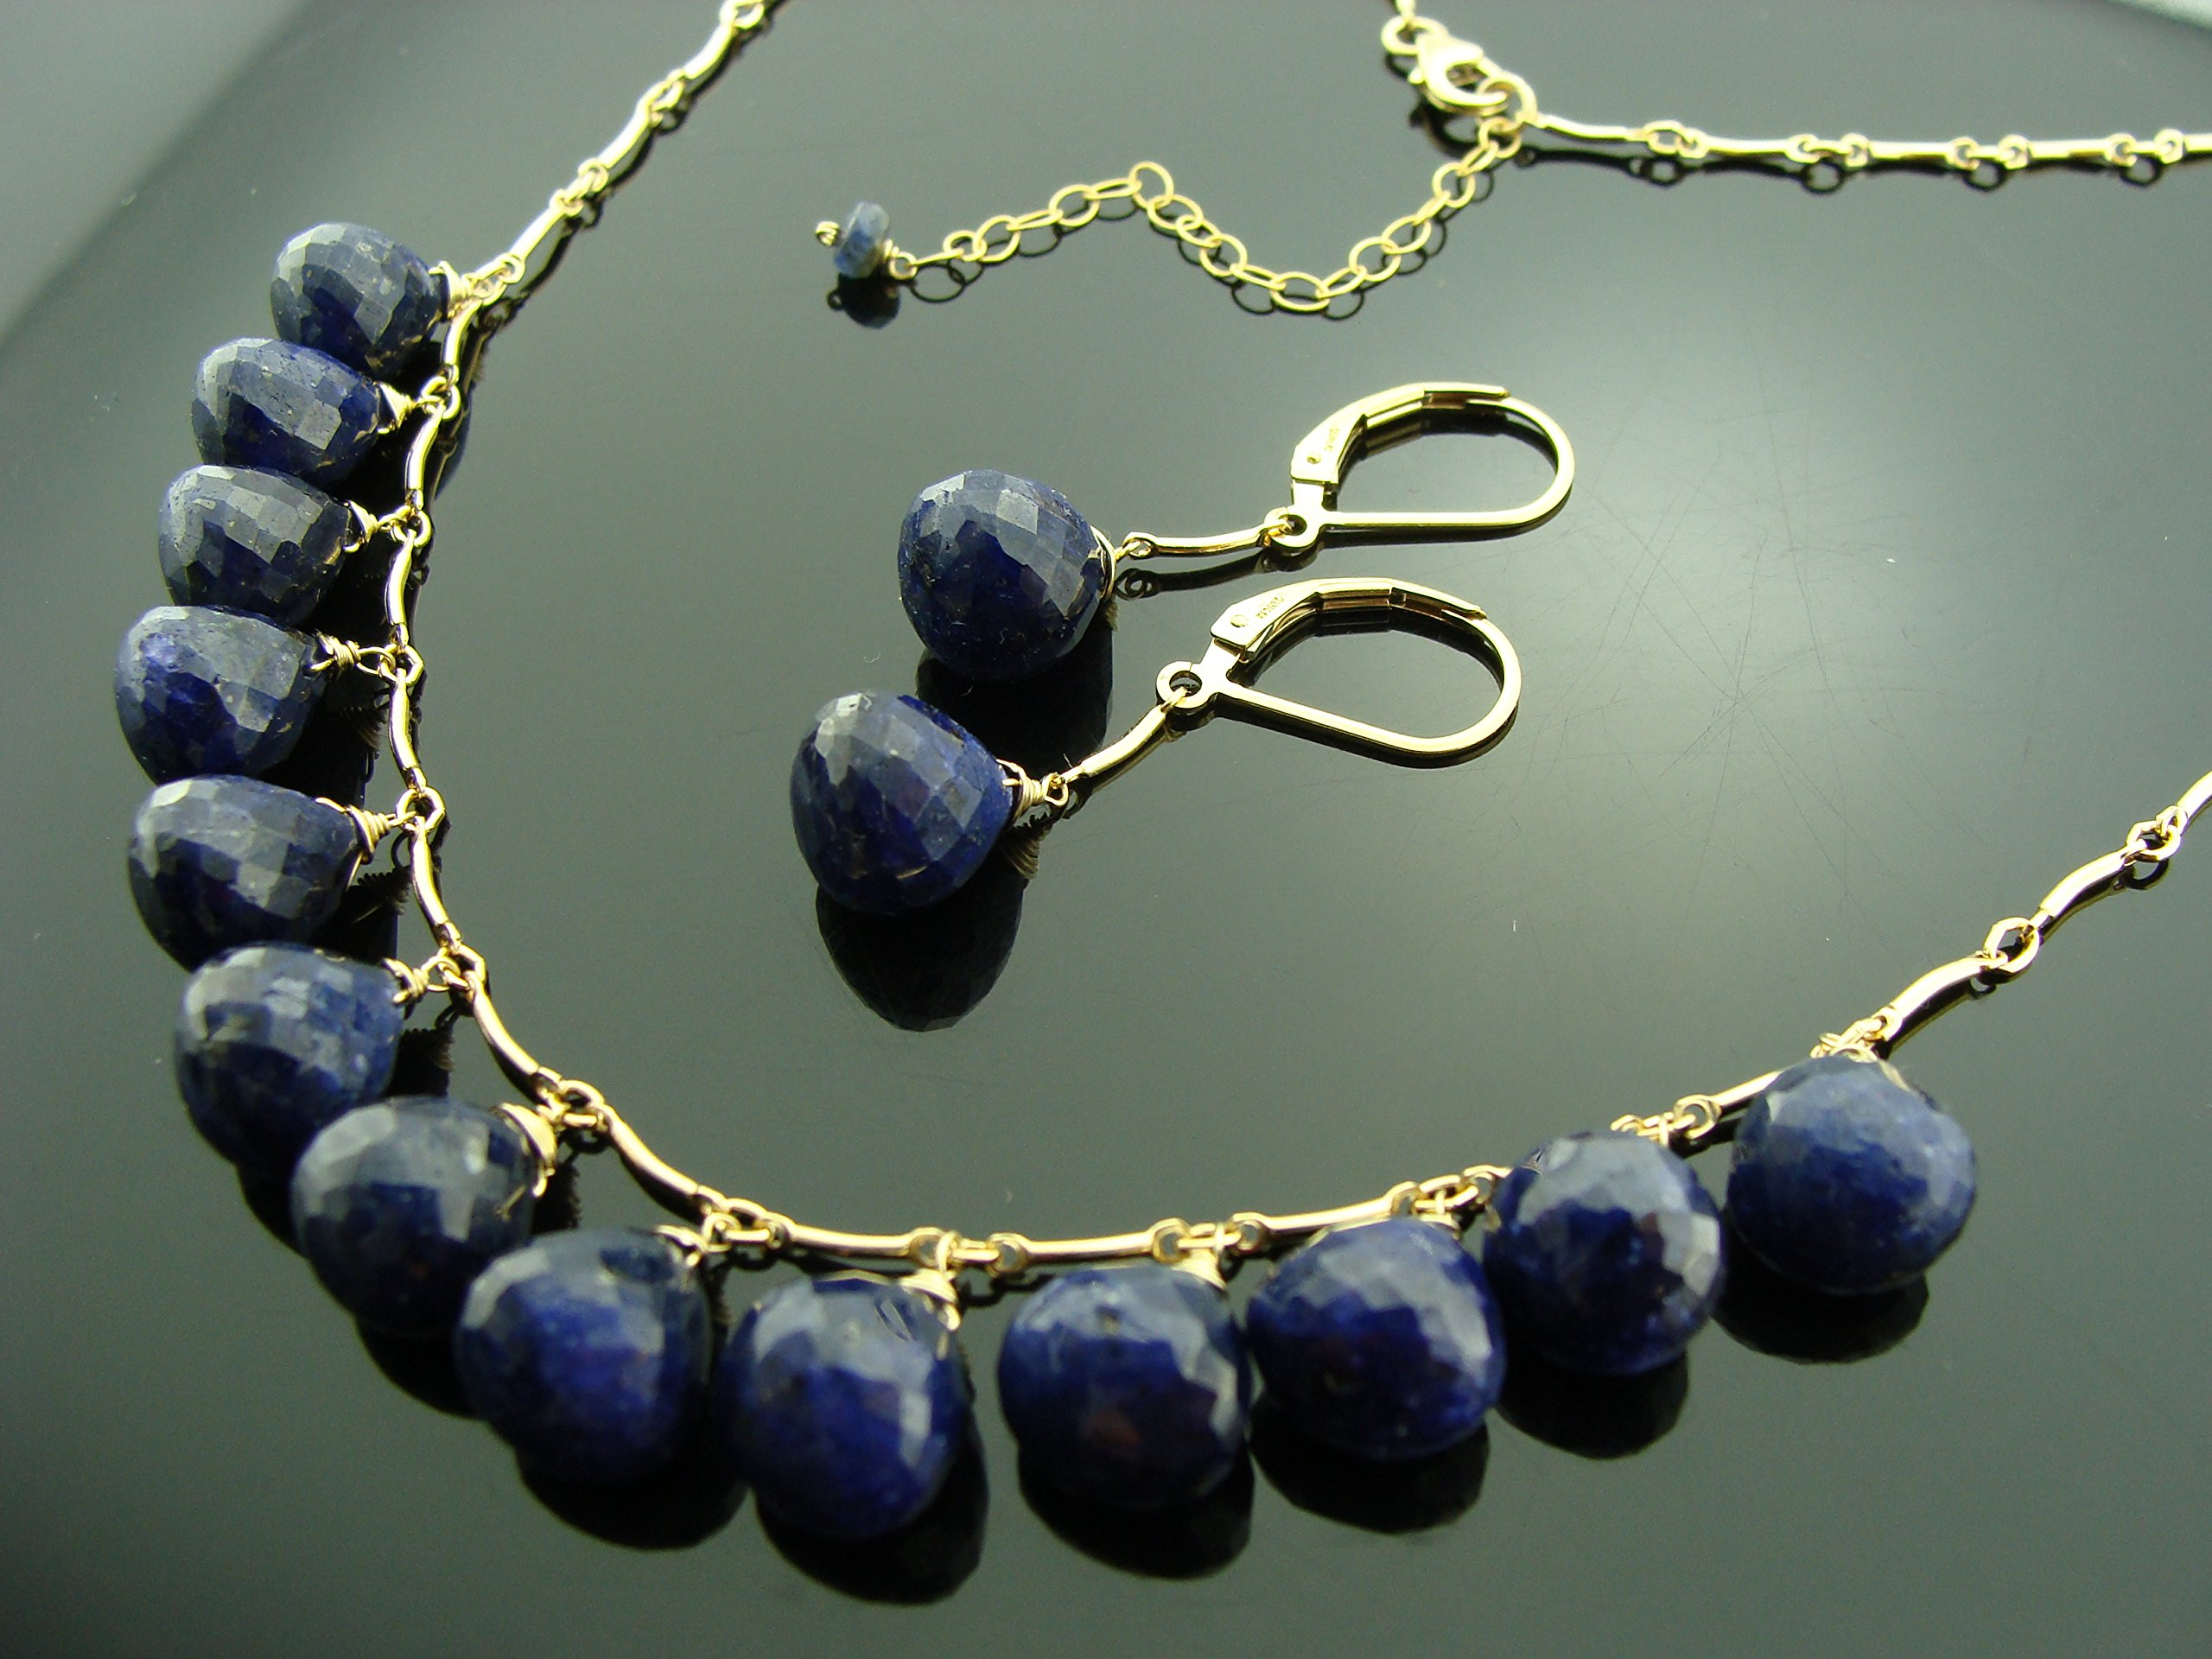 Genuine Sapphire 14K Gold Filled Gemstone Necklace and Earrings Set